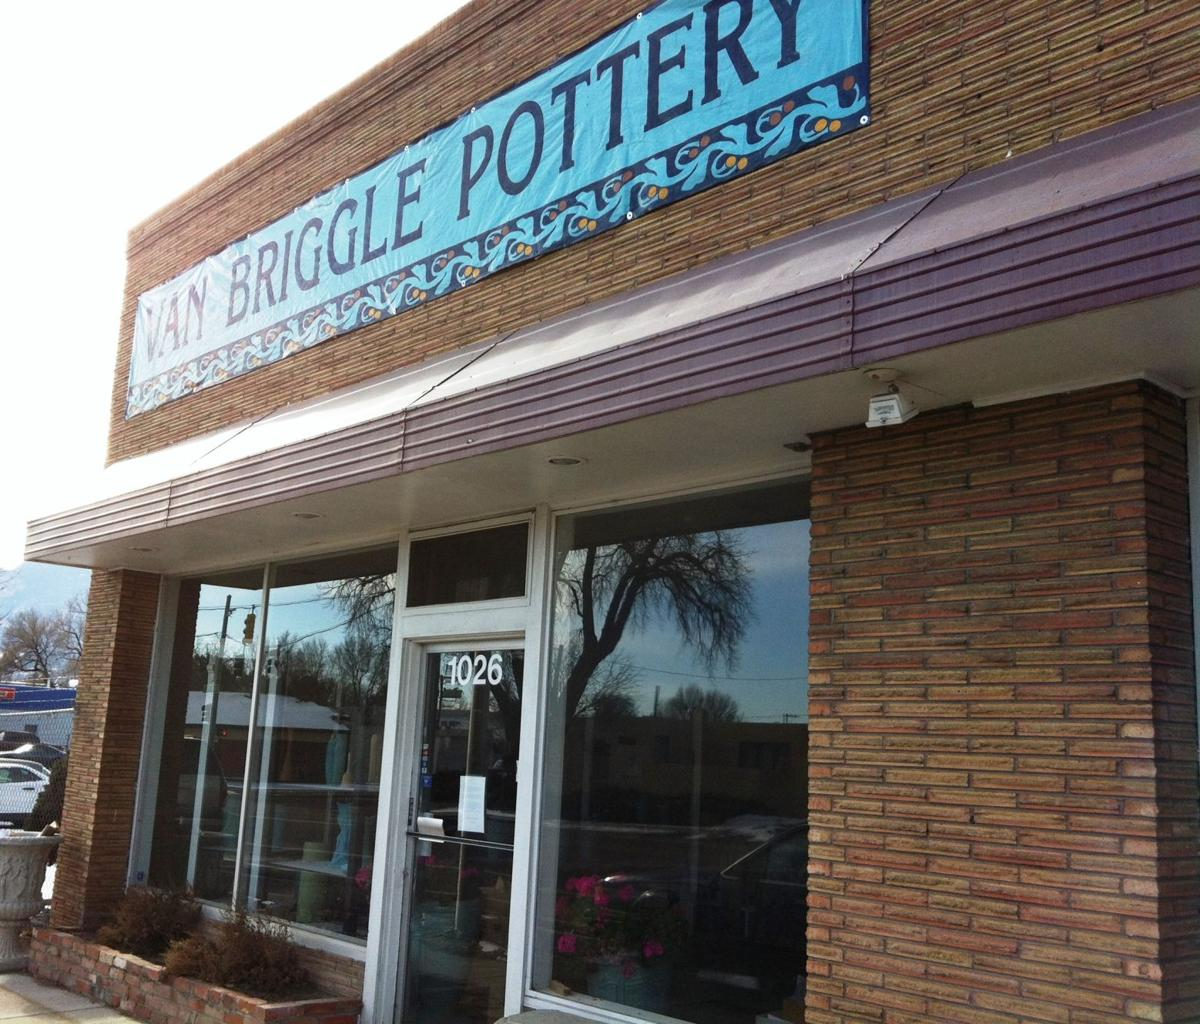 pottery-interest-closed-s